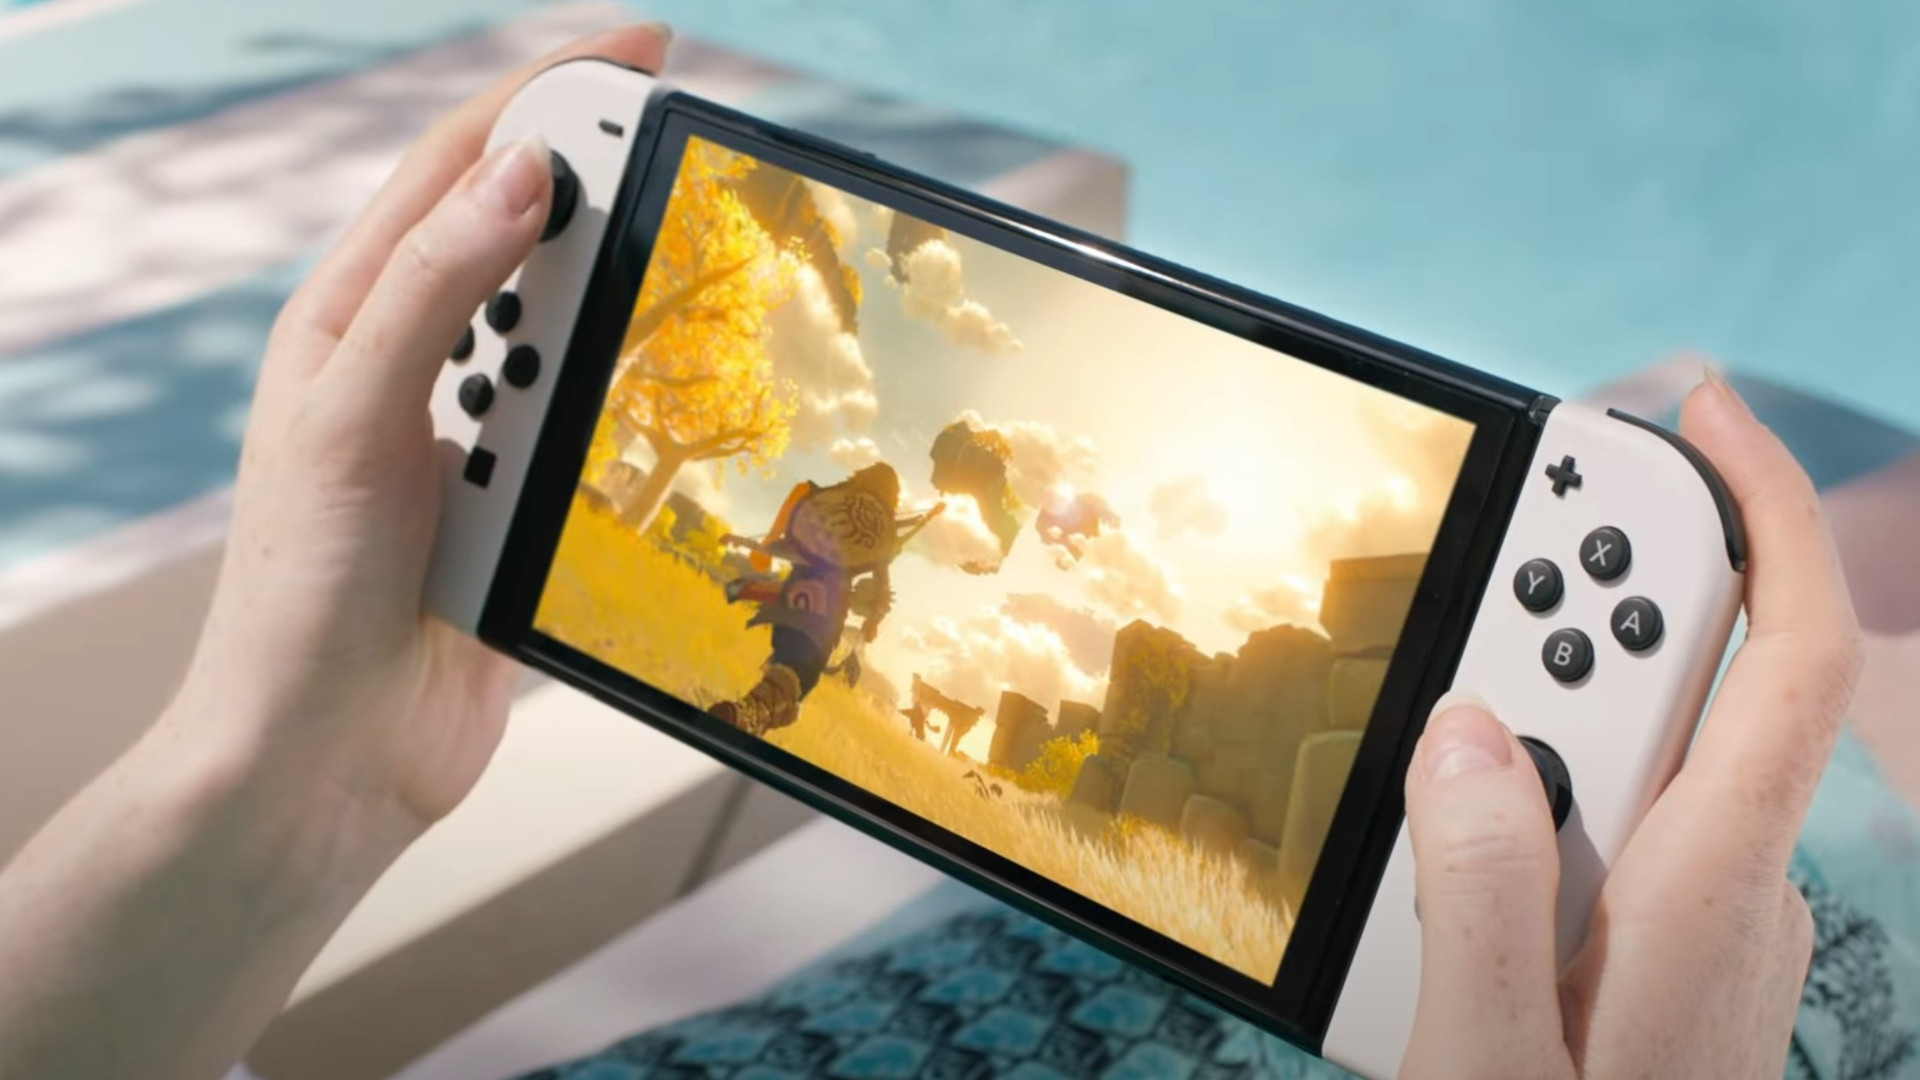 Press image of the Nintendo Switch OLED showing Breath of the Wild 2